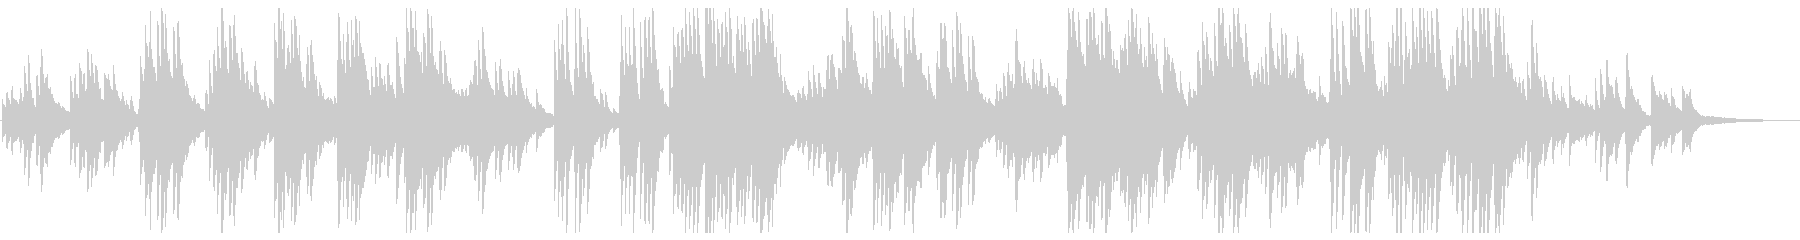 A song with a pleasant piano sound's unreproduced waveform